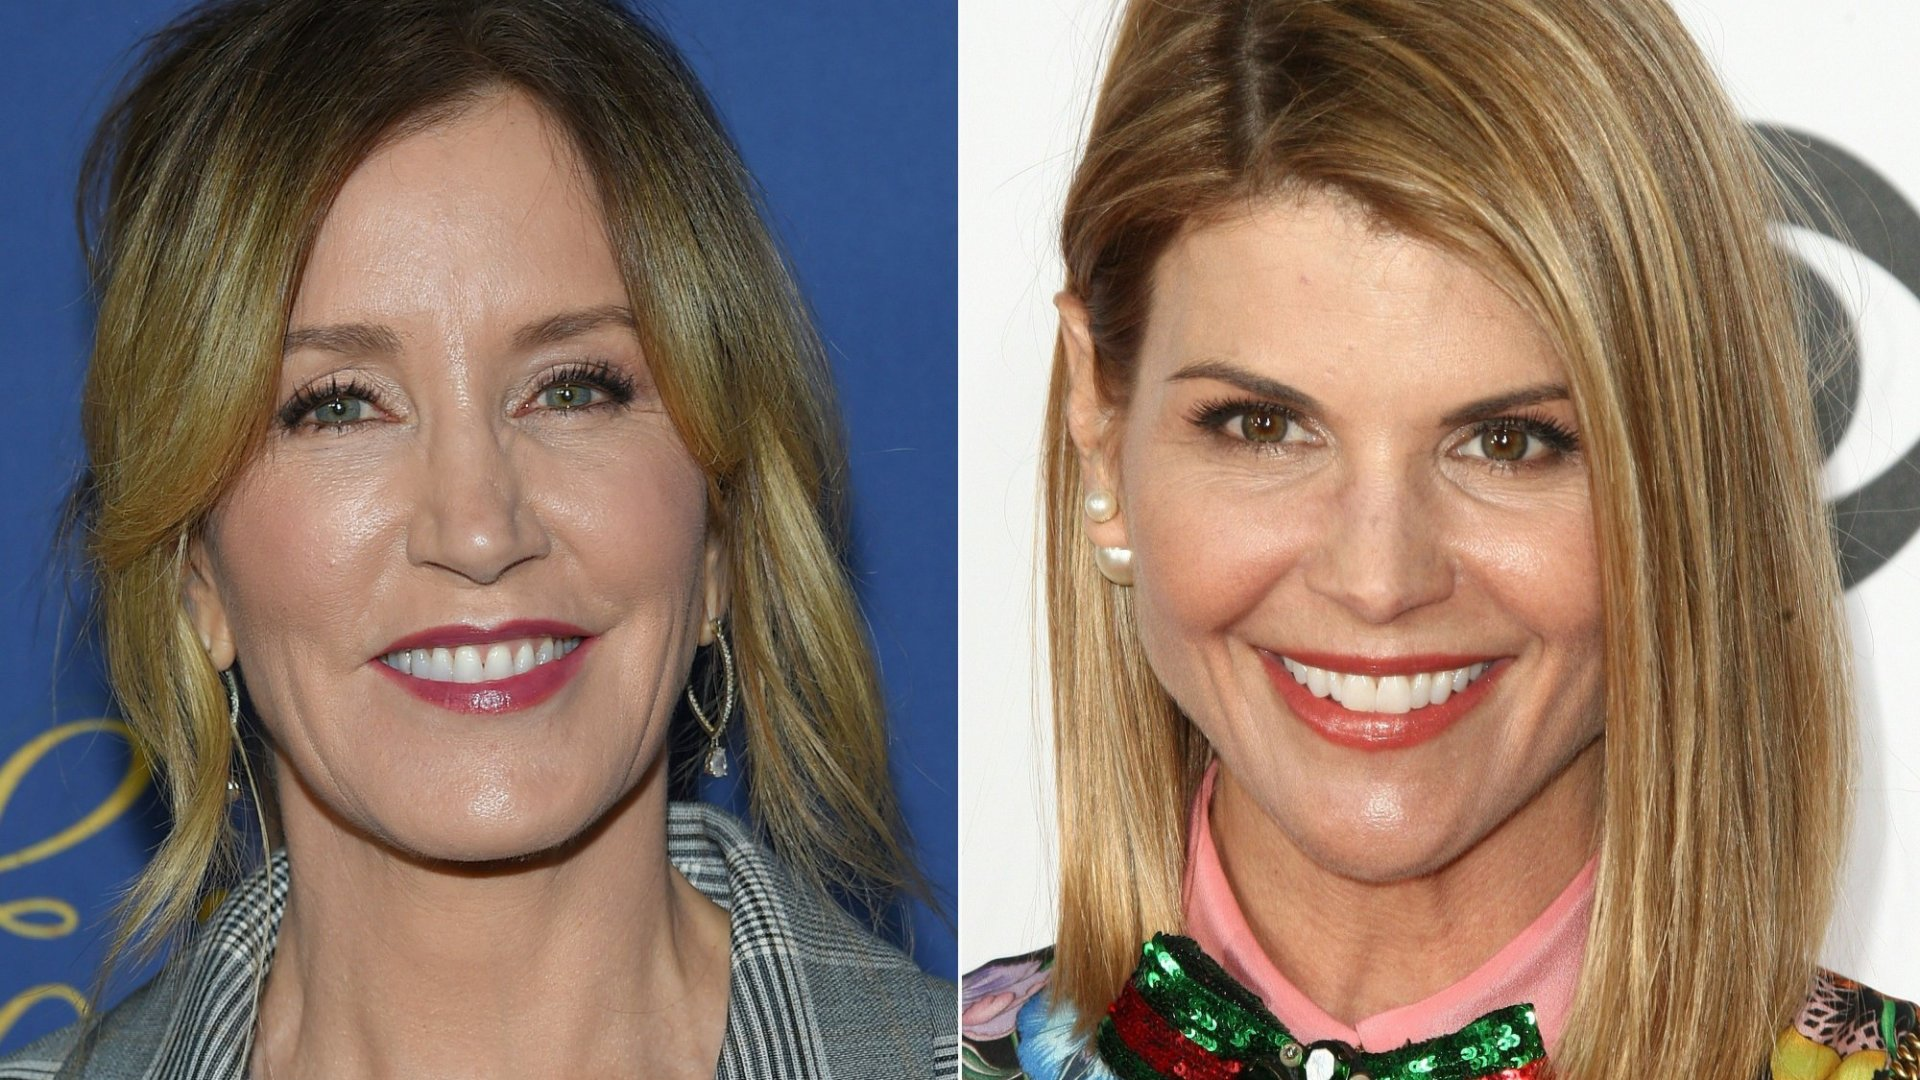 The Best Thing Felicity Huffman and Lori Loughlin Can Do For Their Reputations Right Now